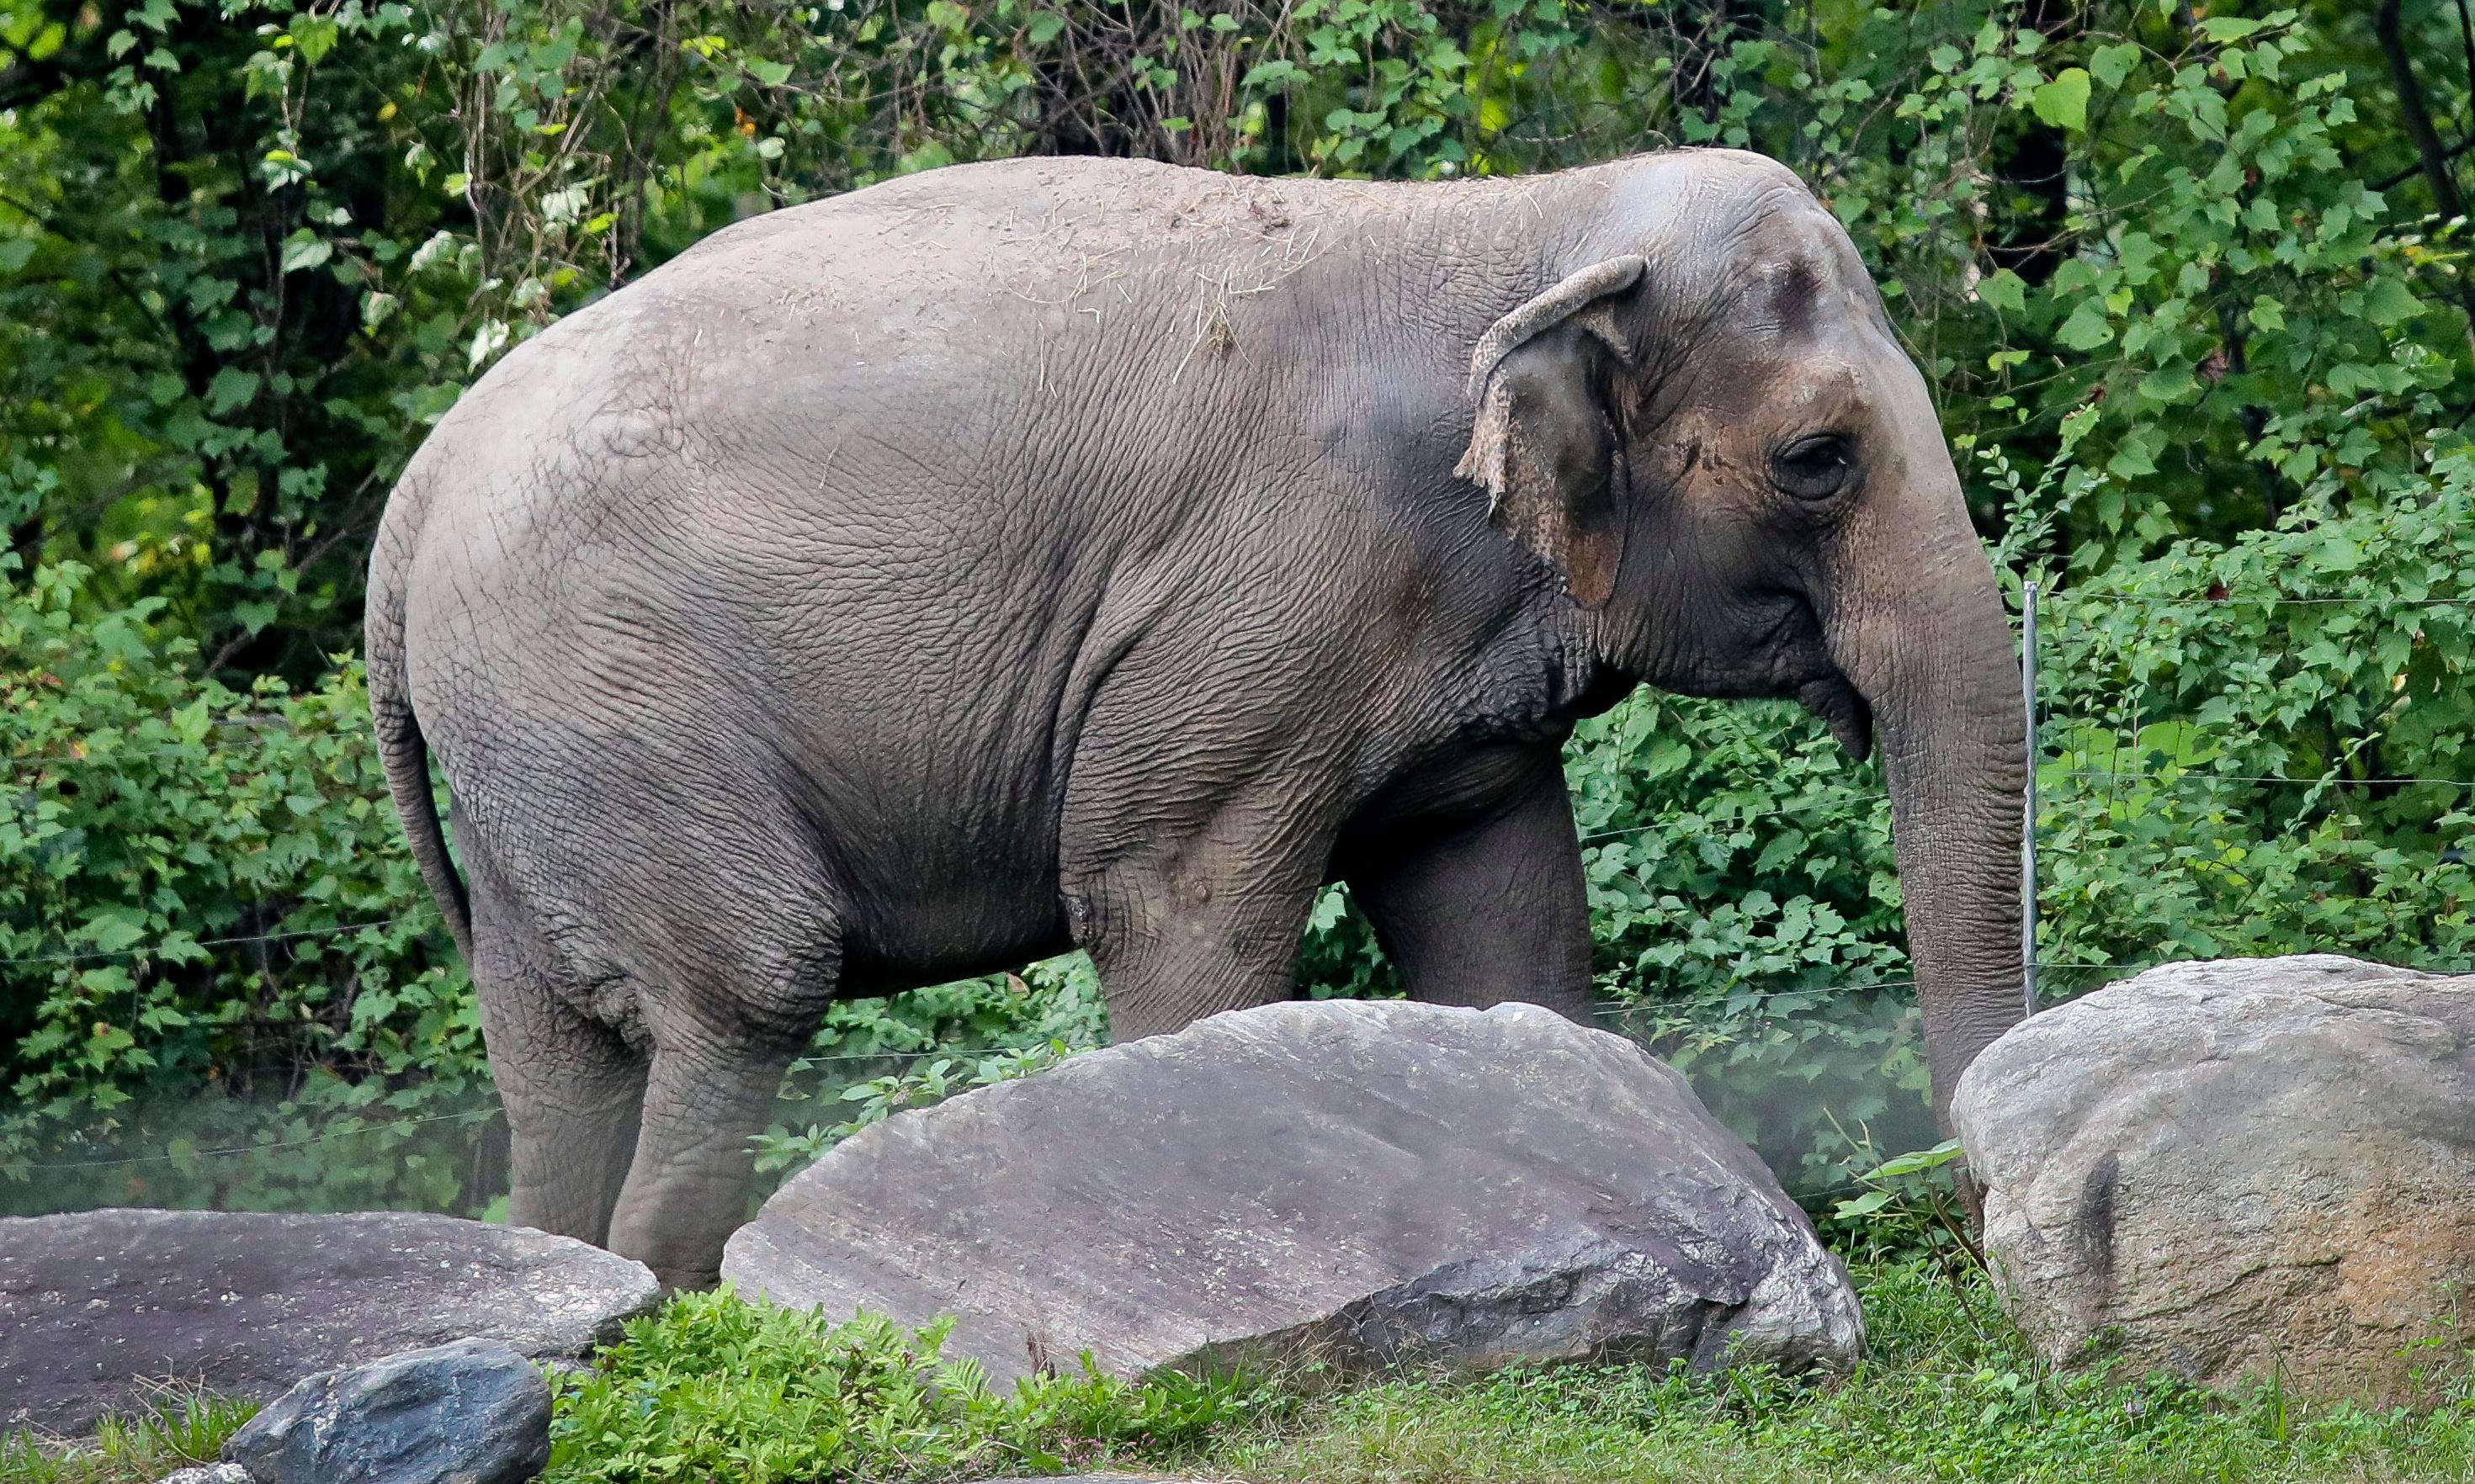 Lawyers argue Happy the elephant should have the same rights as humans